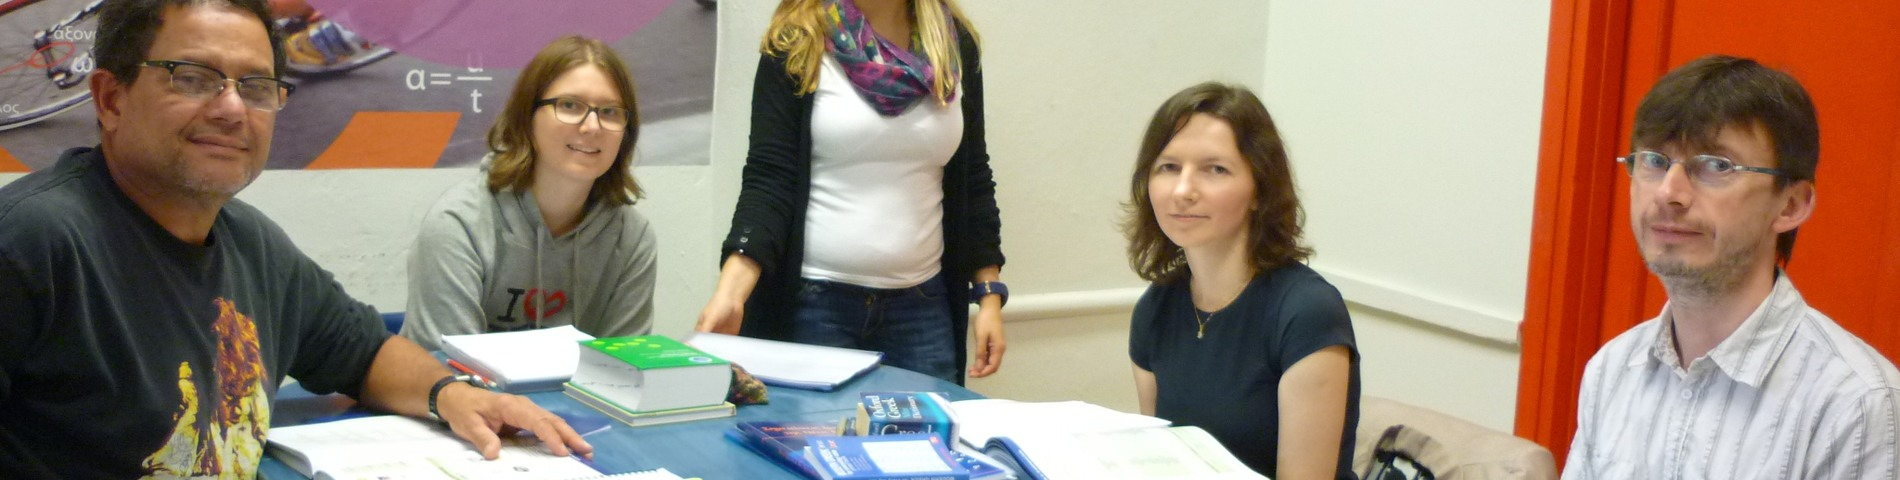 Hellenic Language School Alexander the Great foto 2